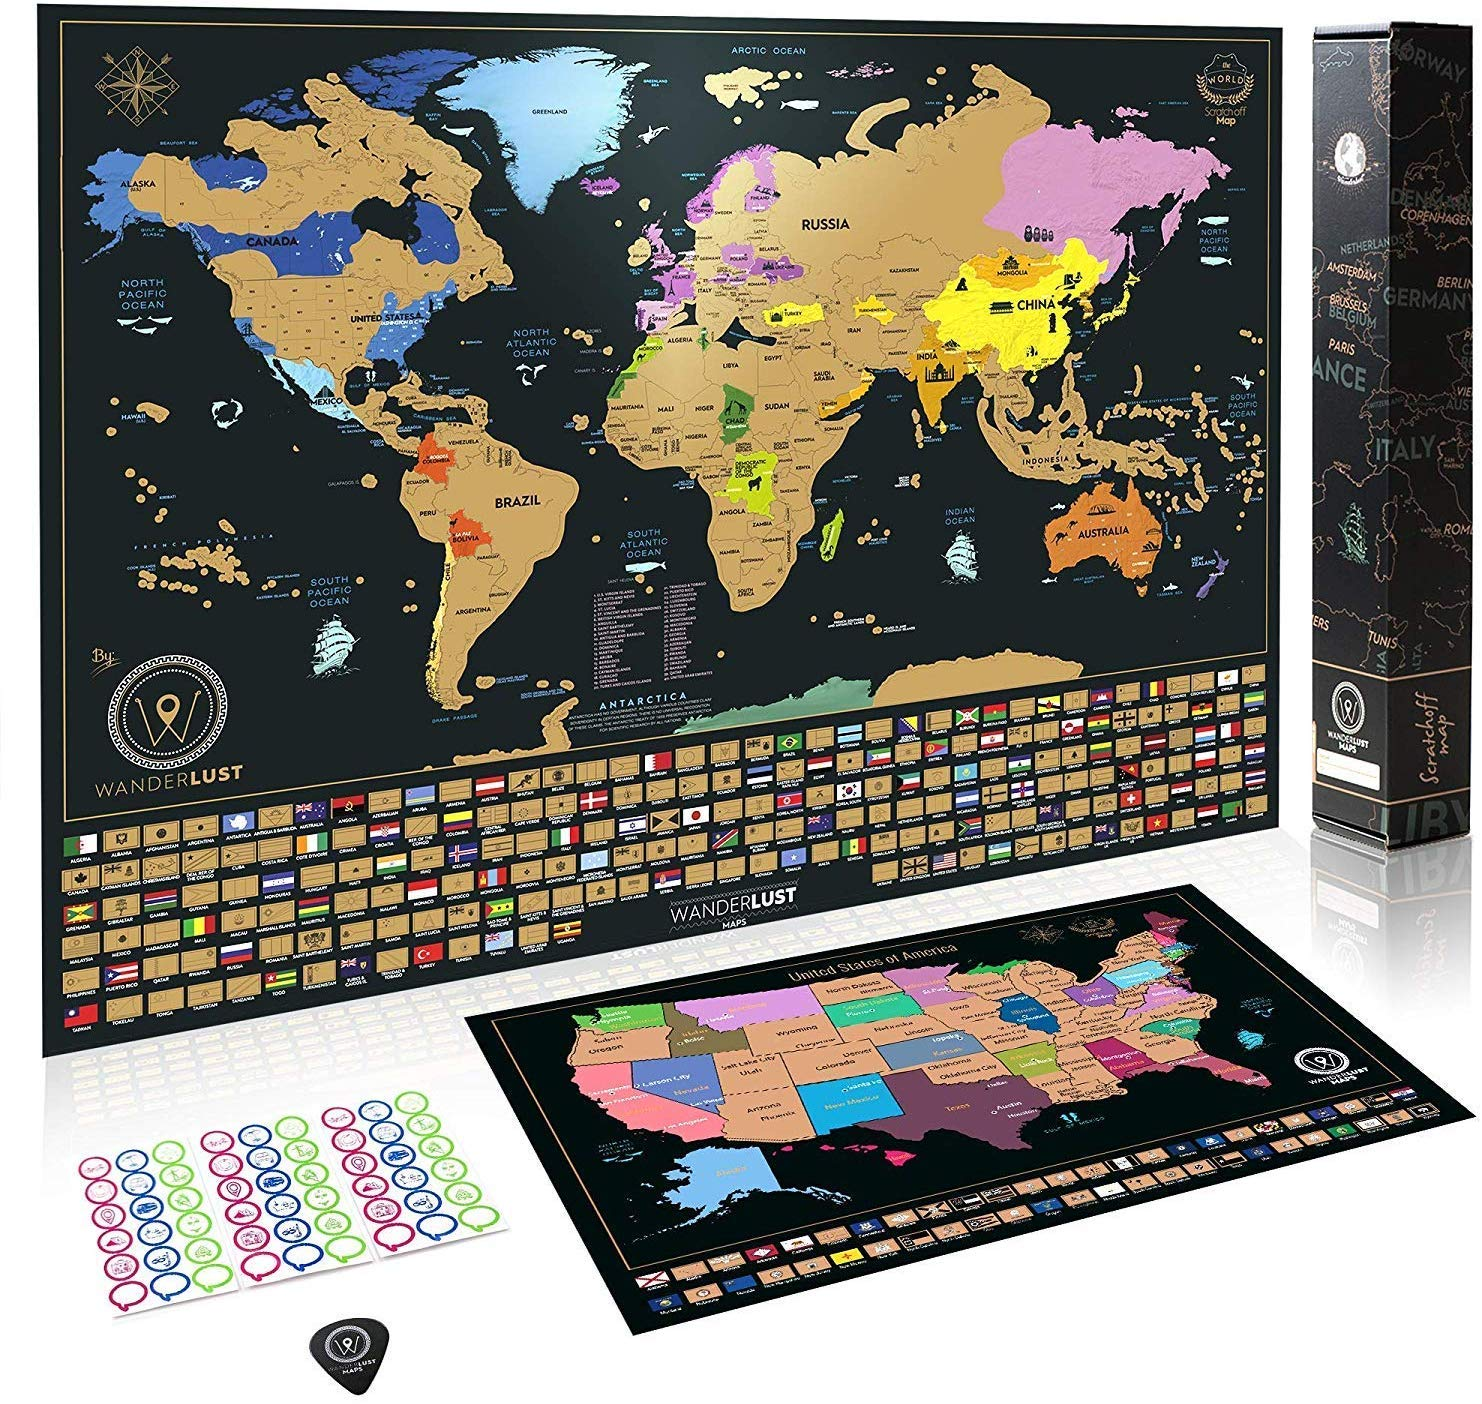 XL Scratch Off Map of the World + USA Map - Set of 2 Deluxe Gold Scratch-Off Posters with Colorful Countries,US States and Flags -Traveler Gift for Adults,Kids -Large and Small Sizes -Made in Europe